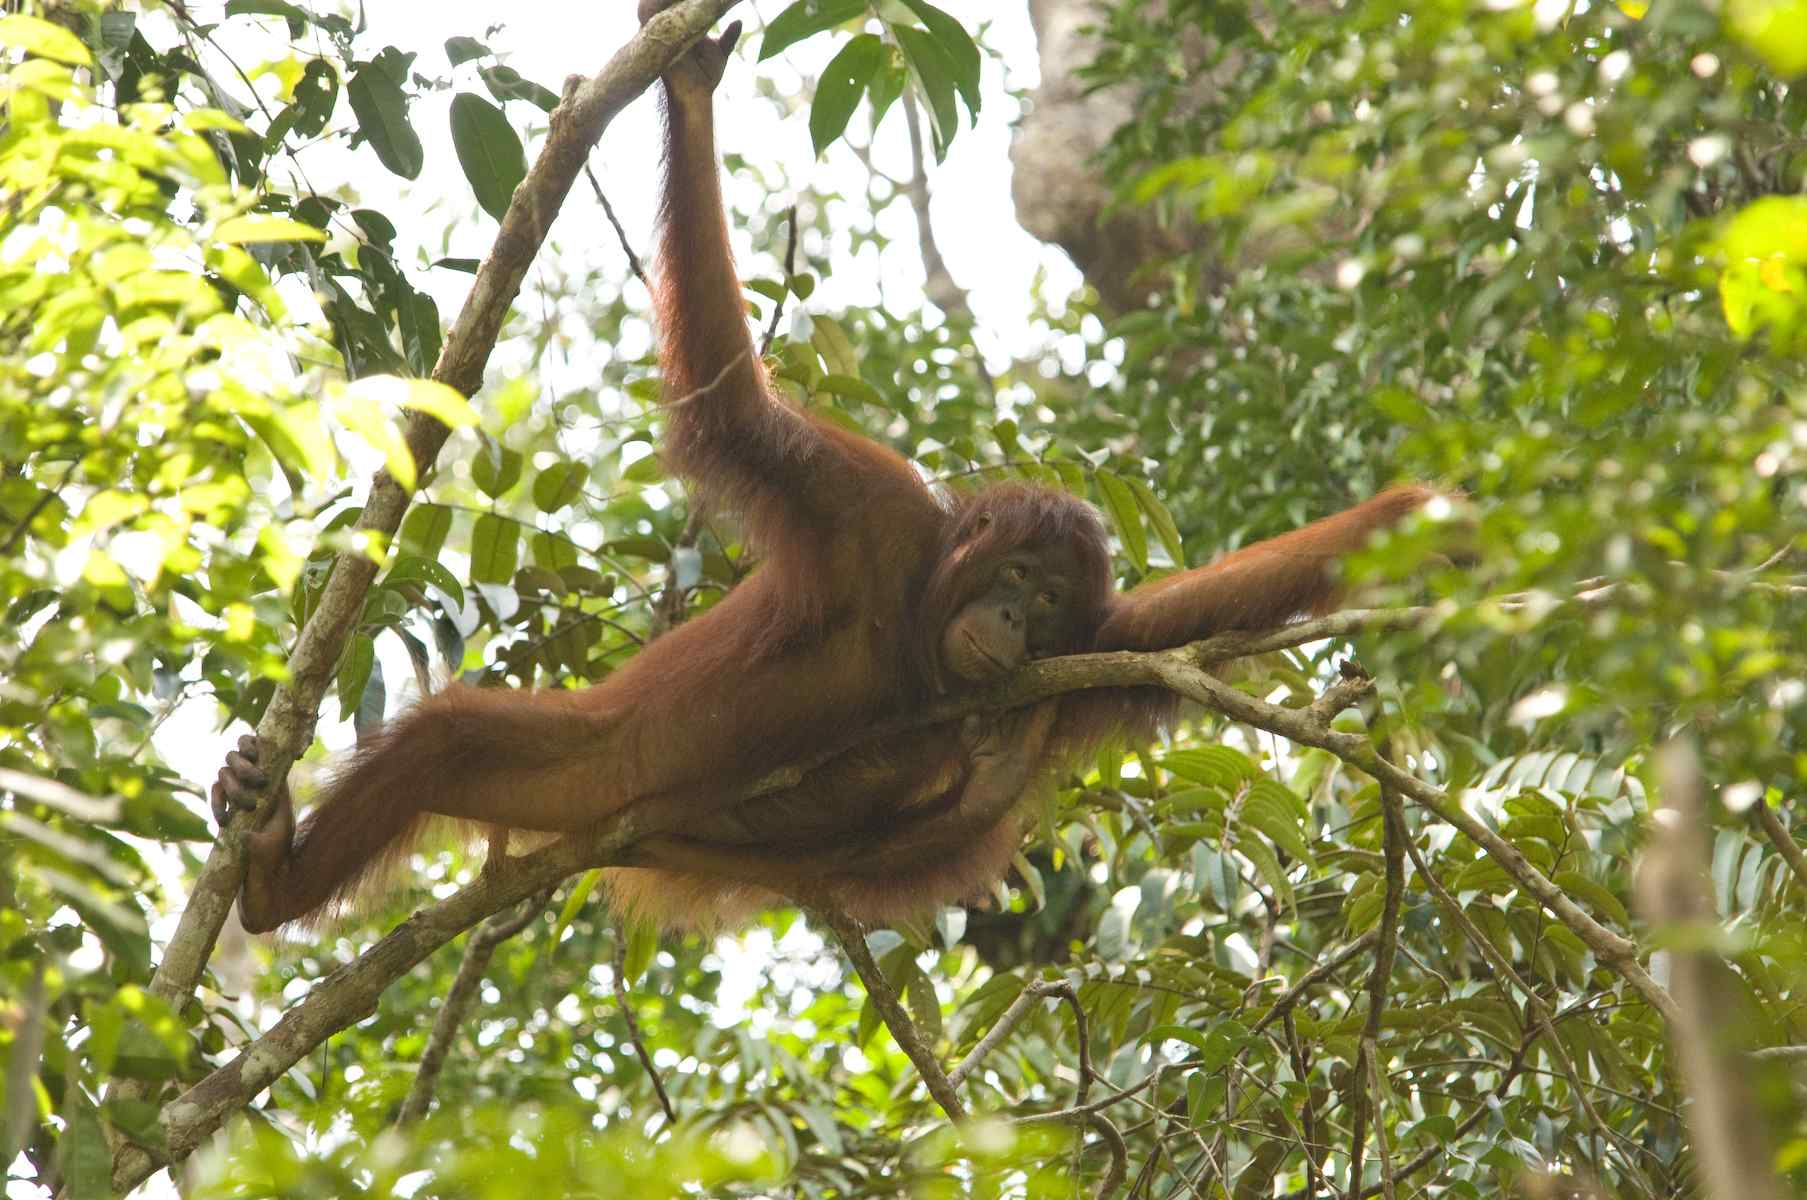 Bornean orangutan by Ian Wood